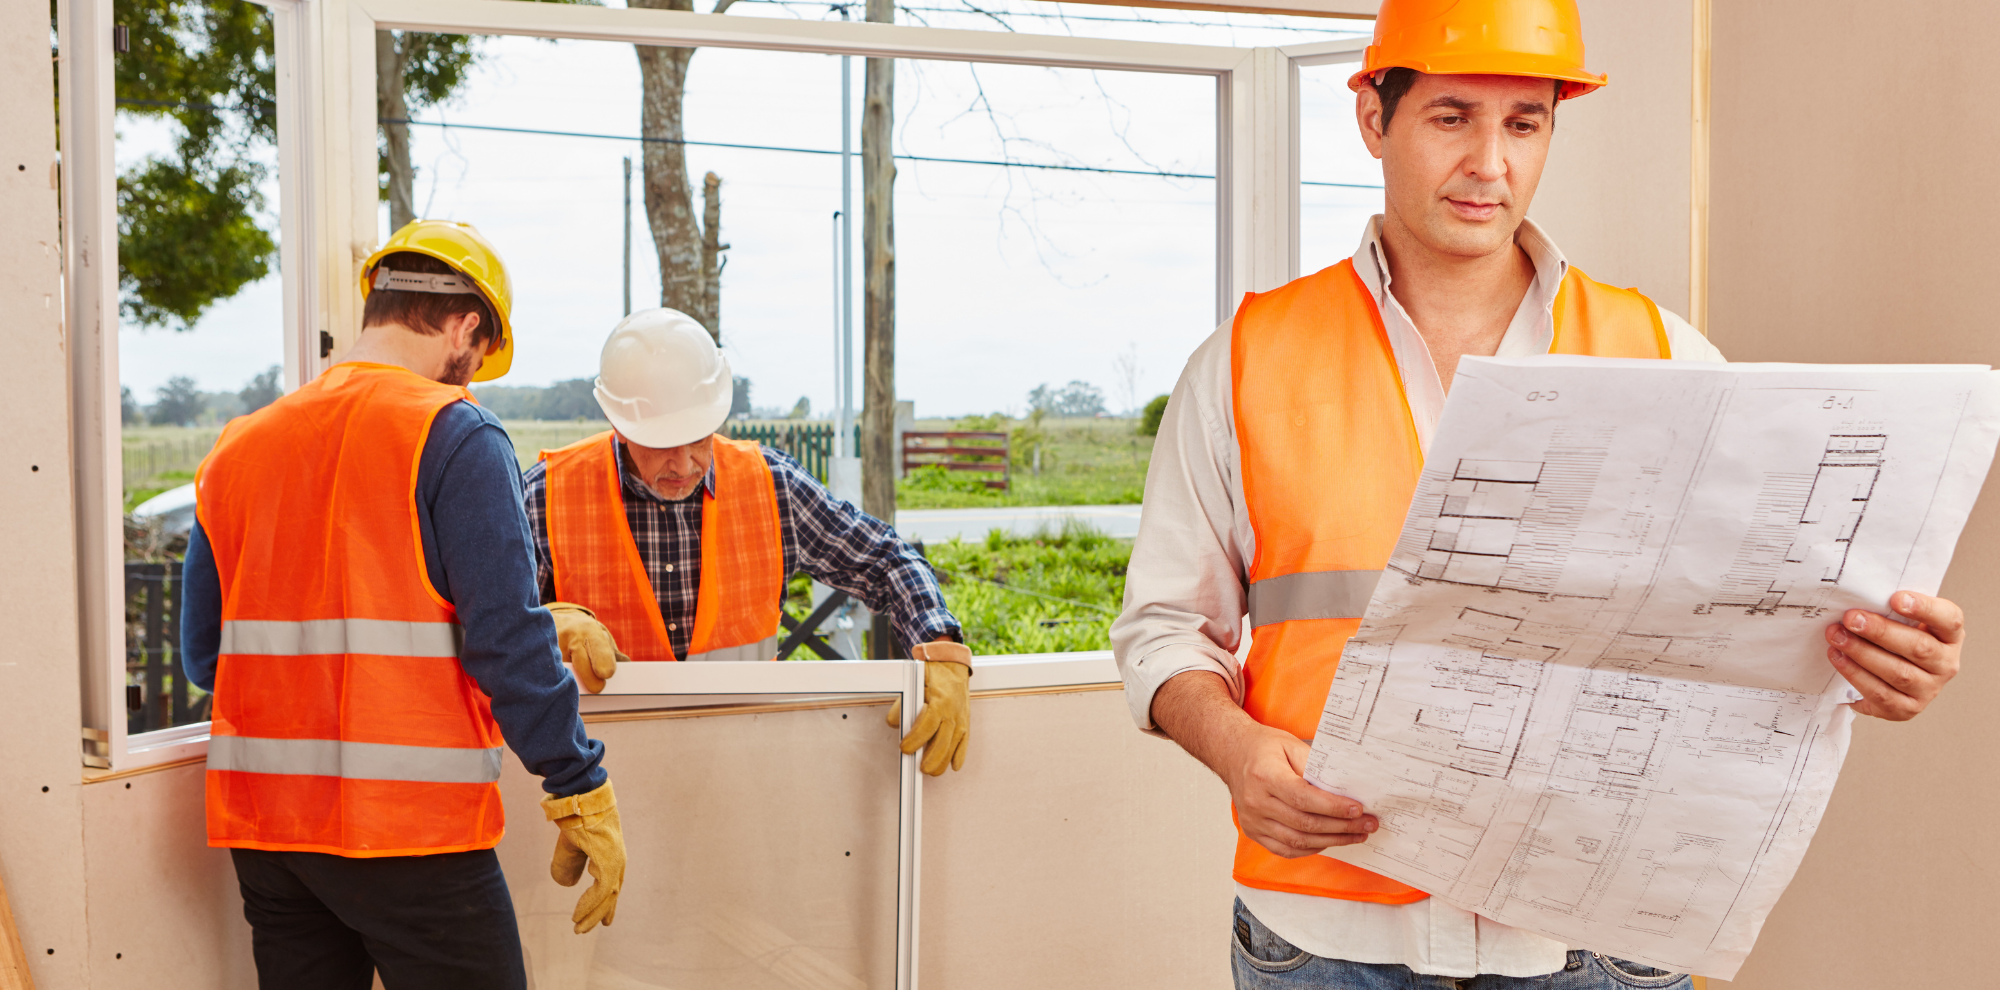 Category Preview - <h4>NVQ LEVEL 3<br><strong>OCCUPATIONAL WORK SUPERVISION<br></strong>£1,200 + FREE CSCS CARD</h4>